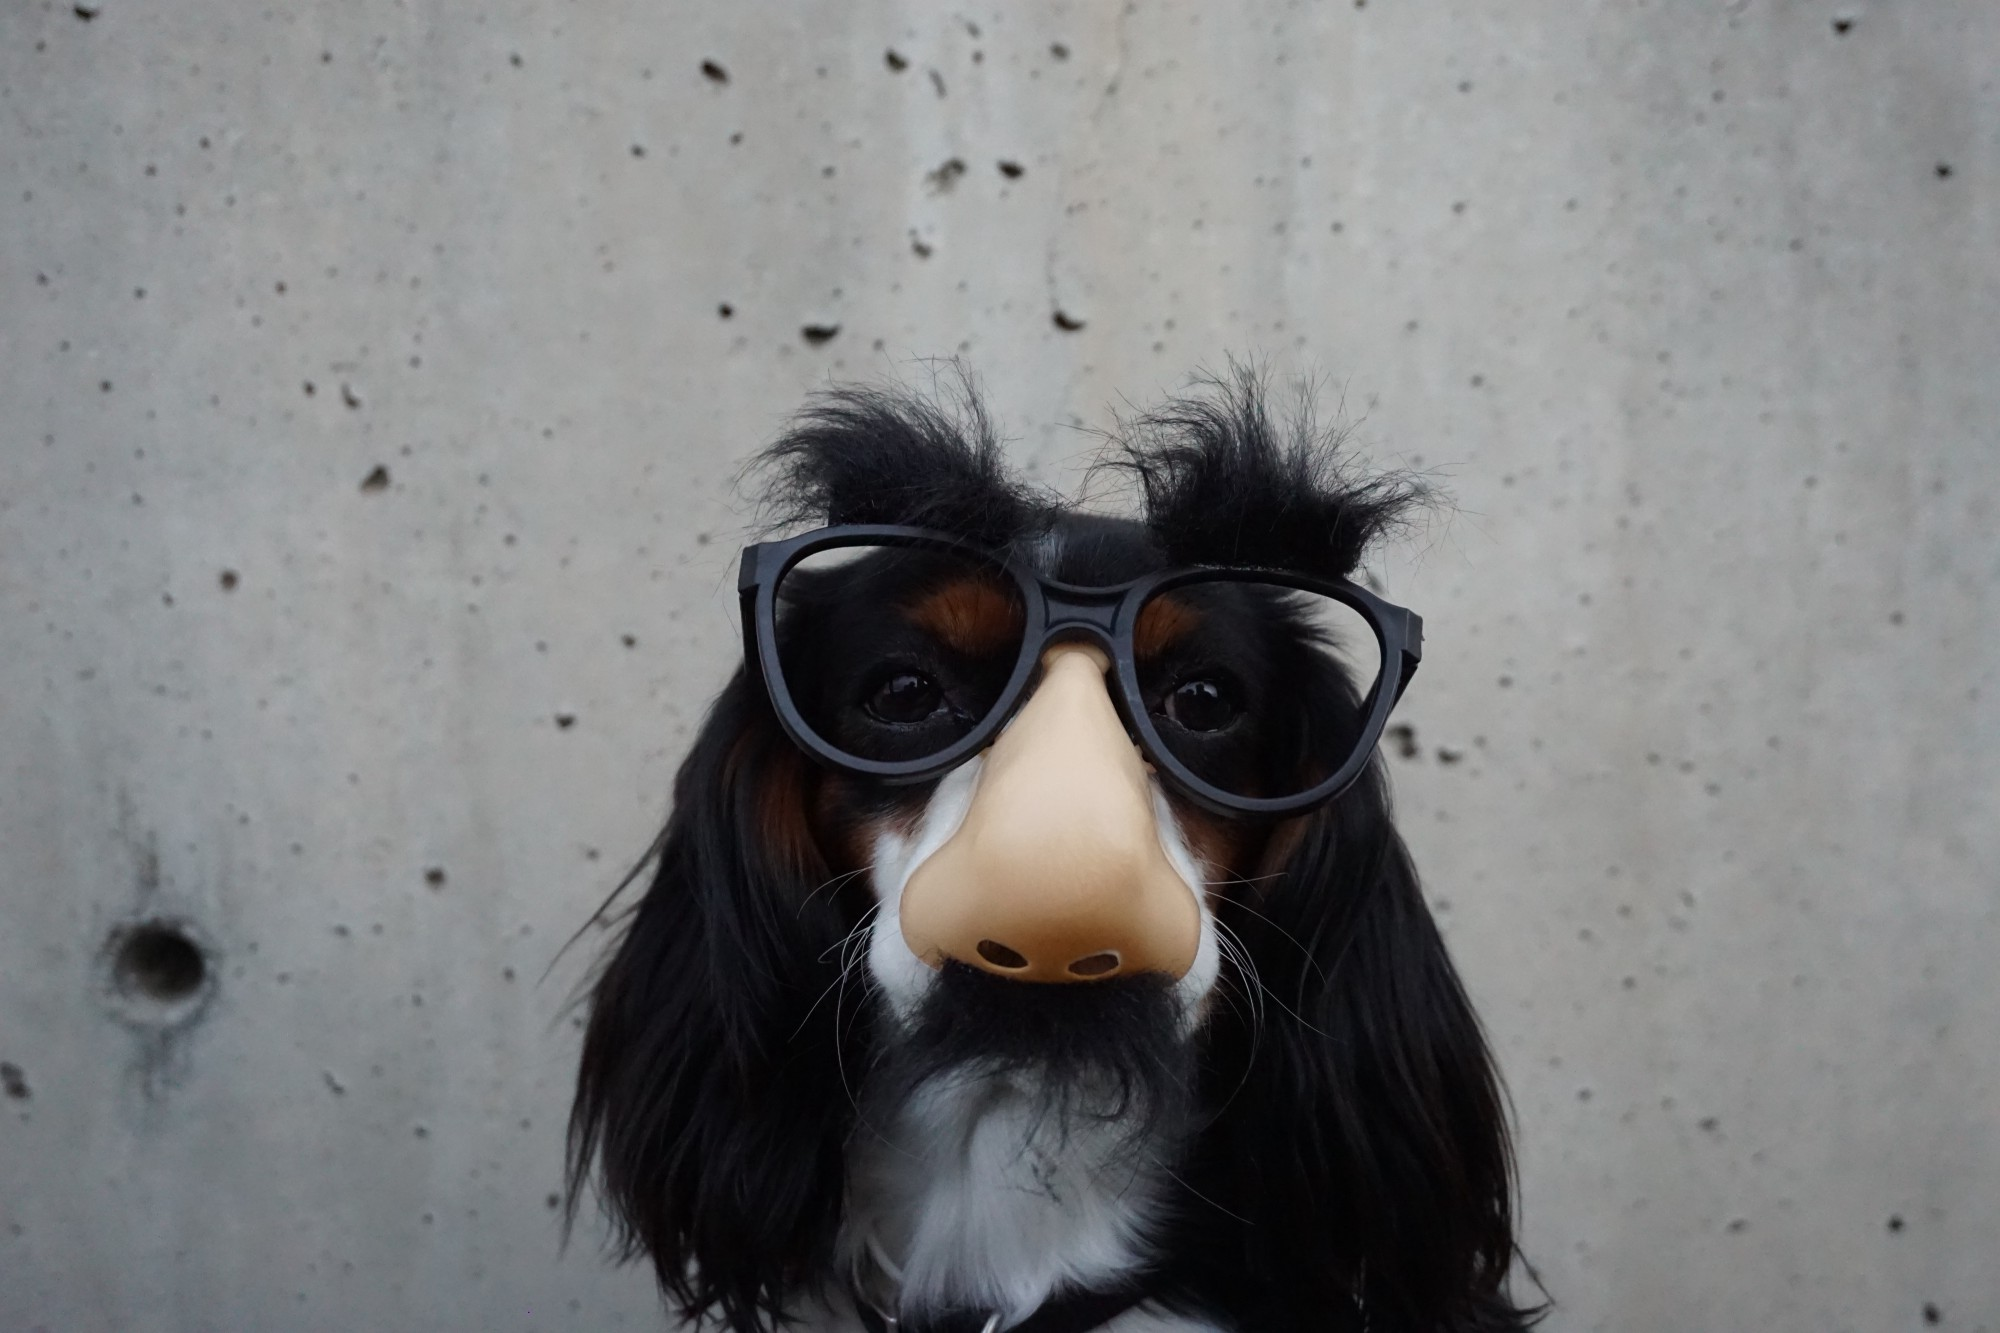 A dog wearing funny glasses